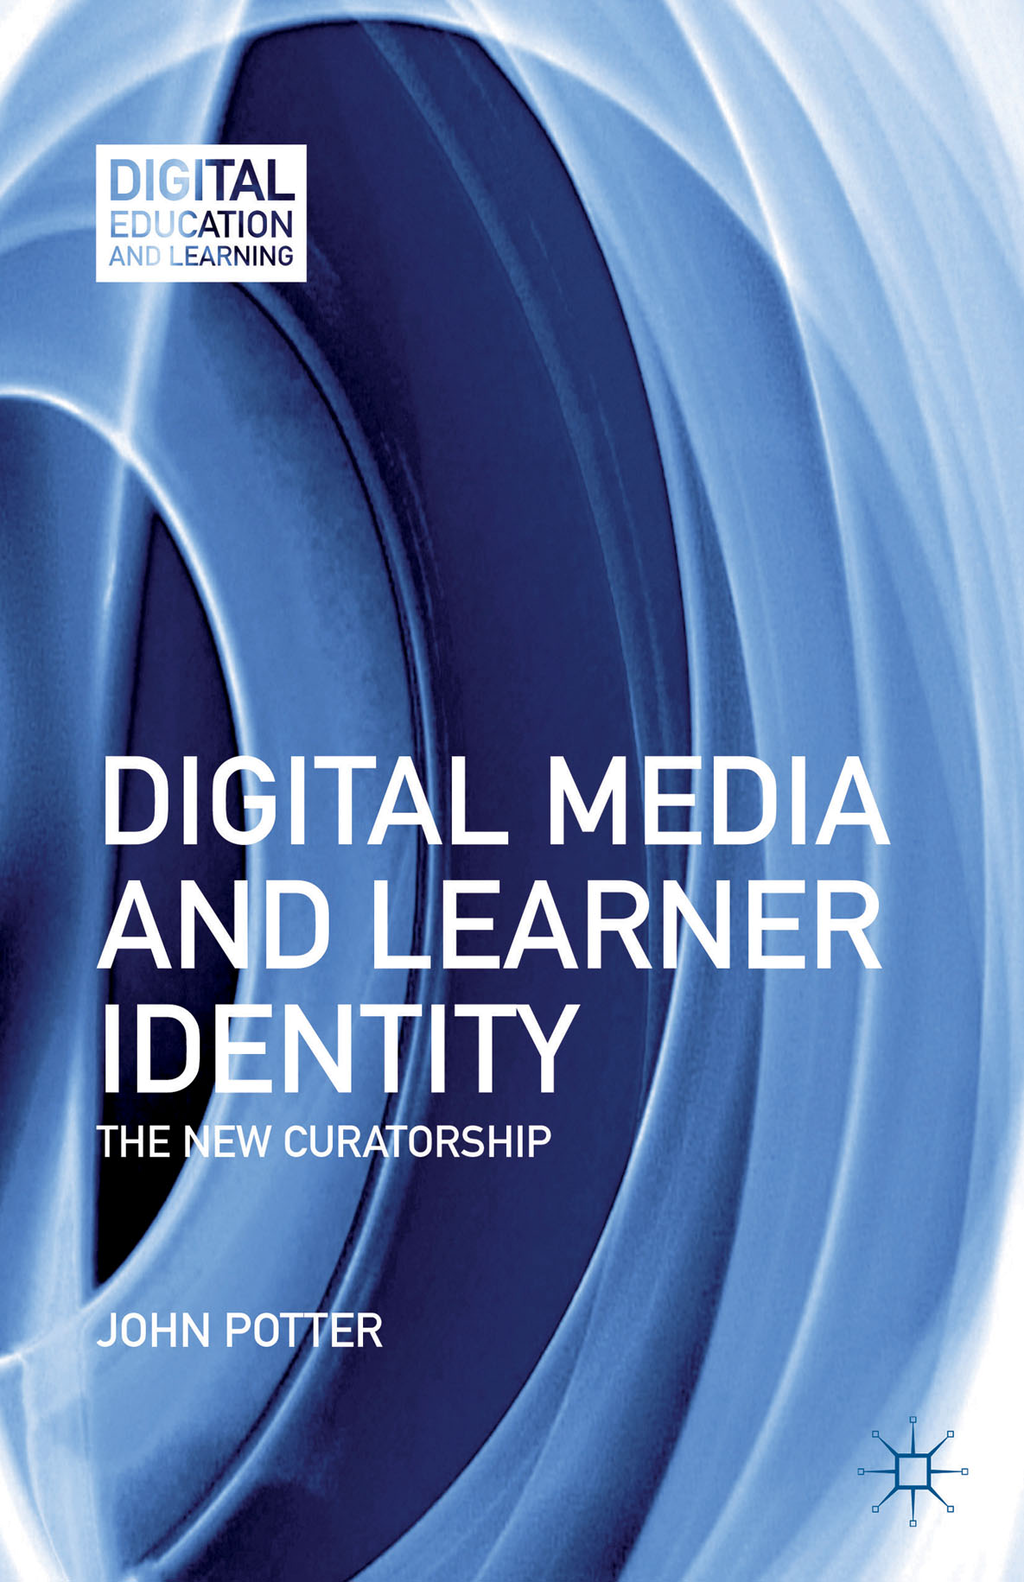 Digital Media and Learner Identity The New Curatorship